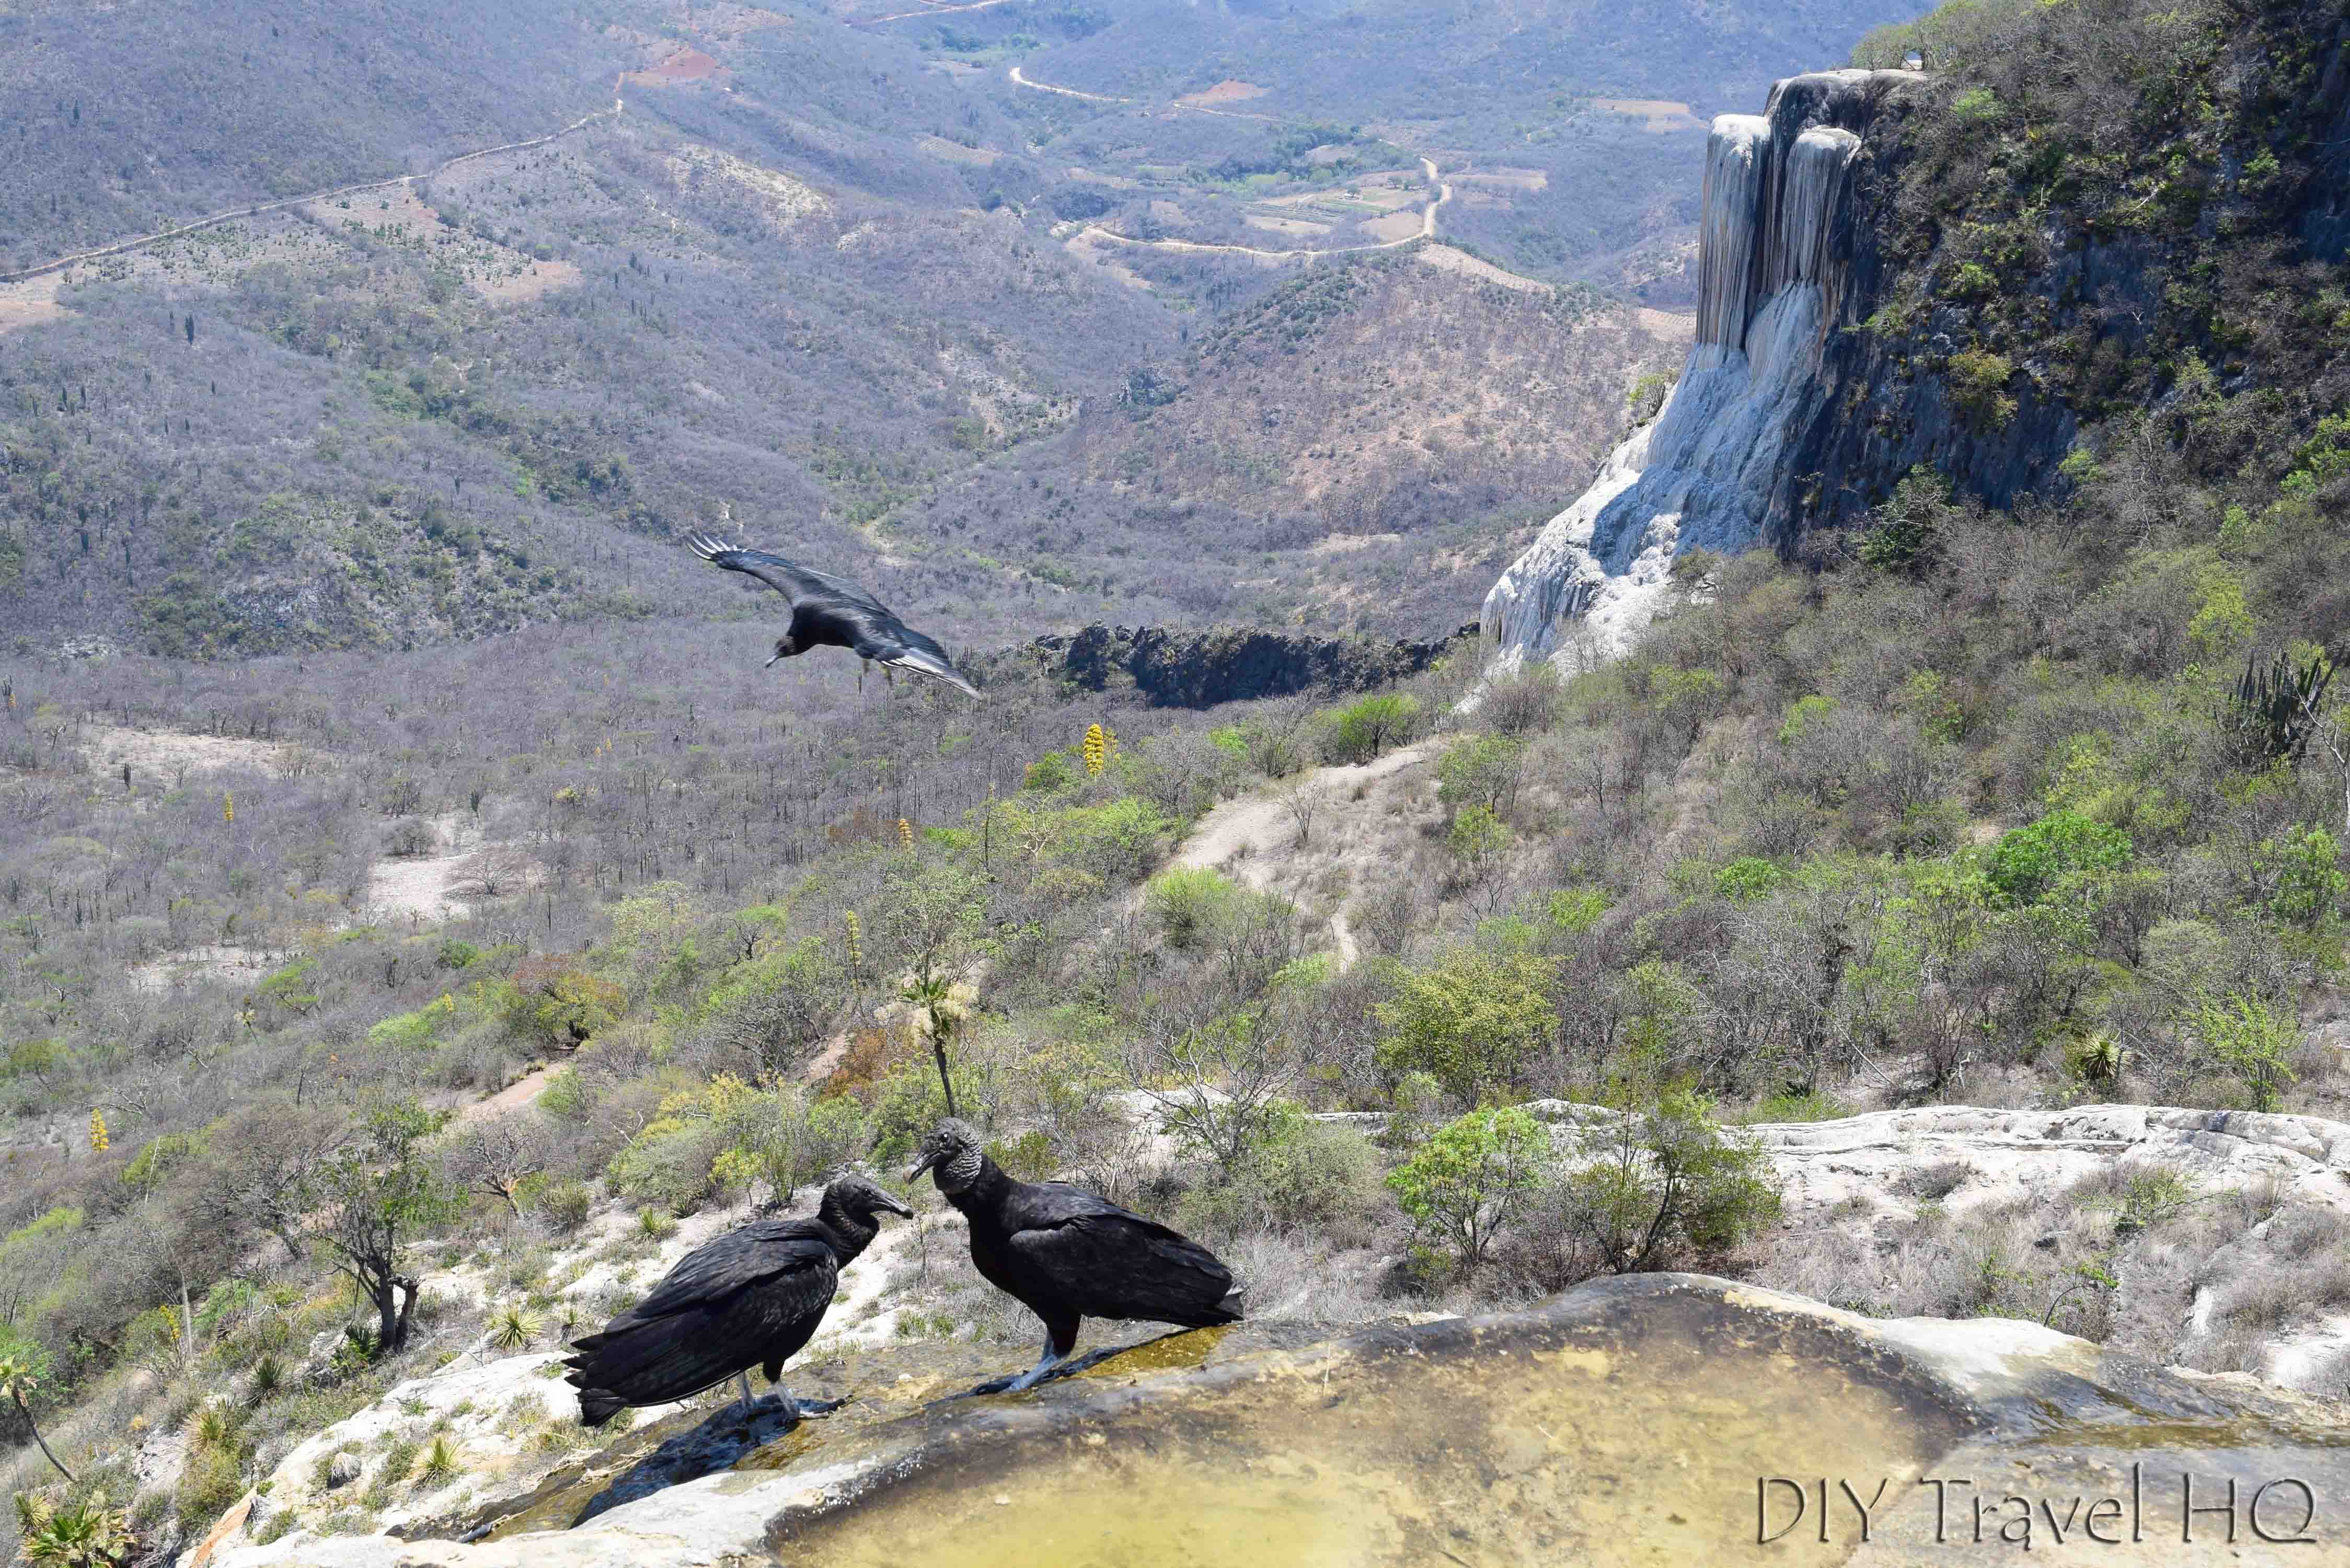 Hierve el Agua Petrified Waterfall and Vultures